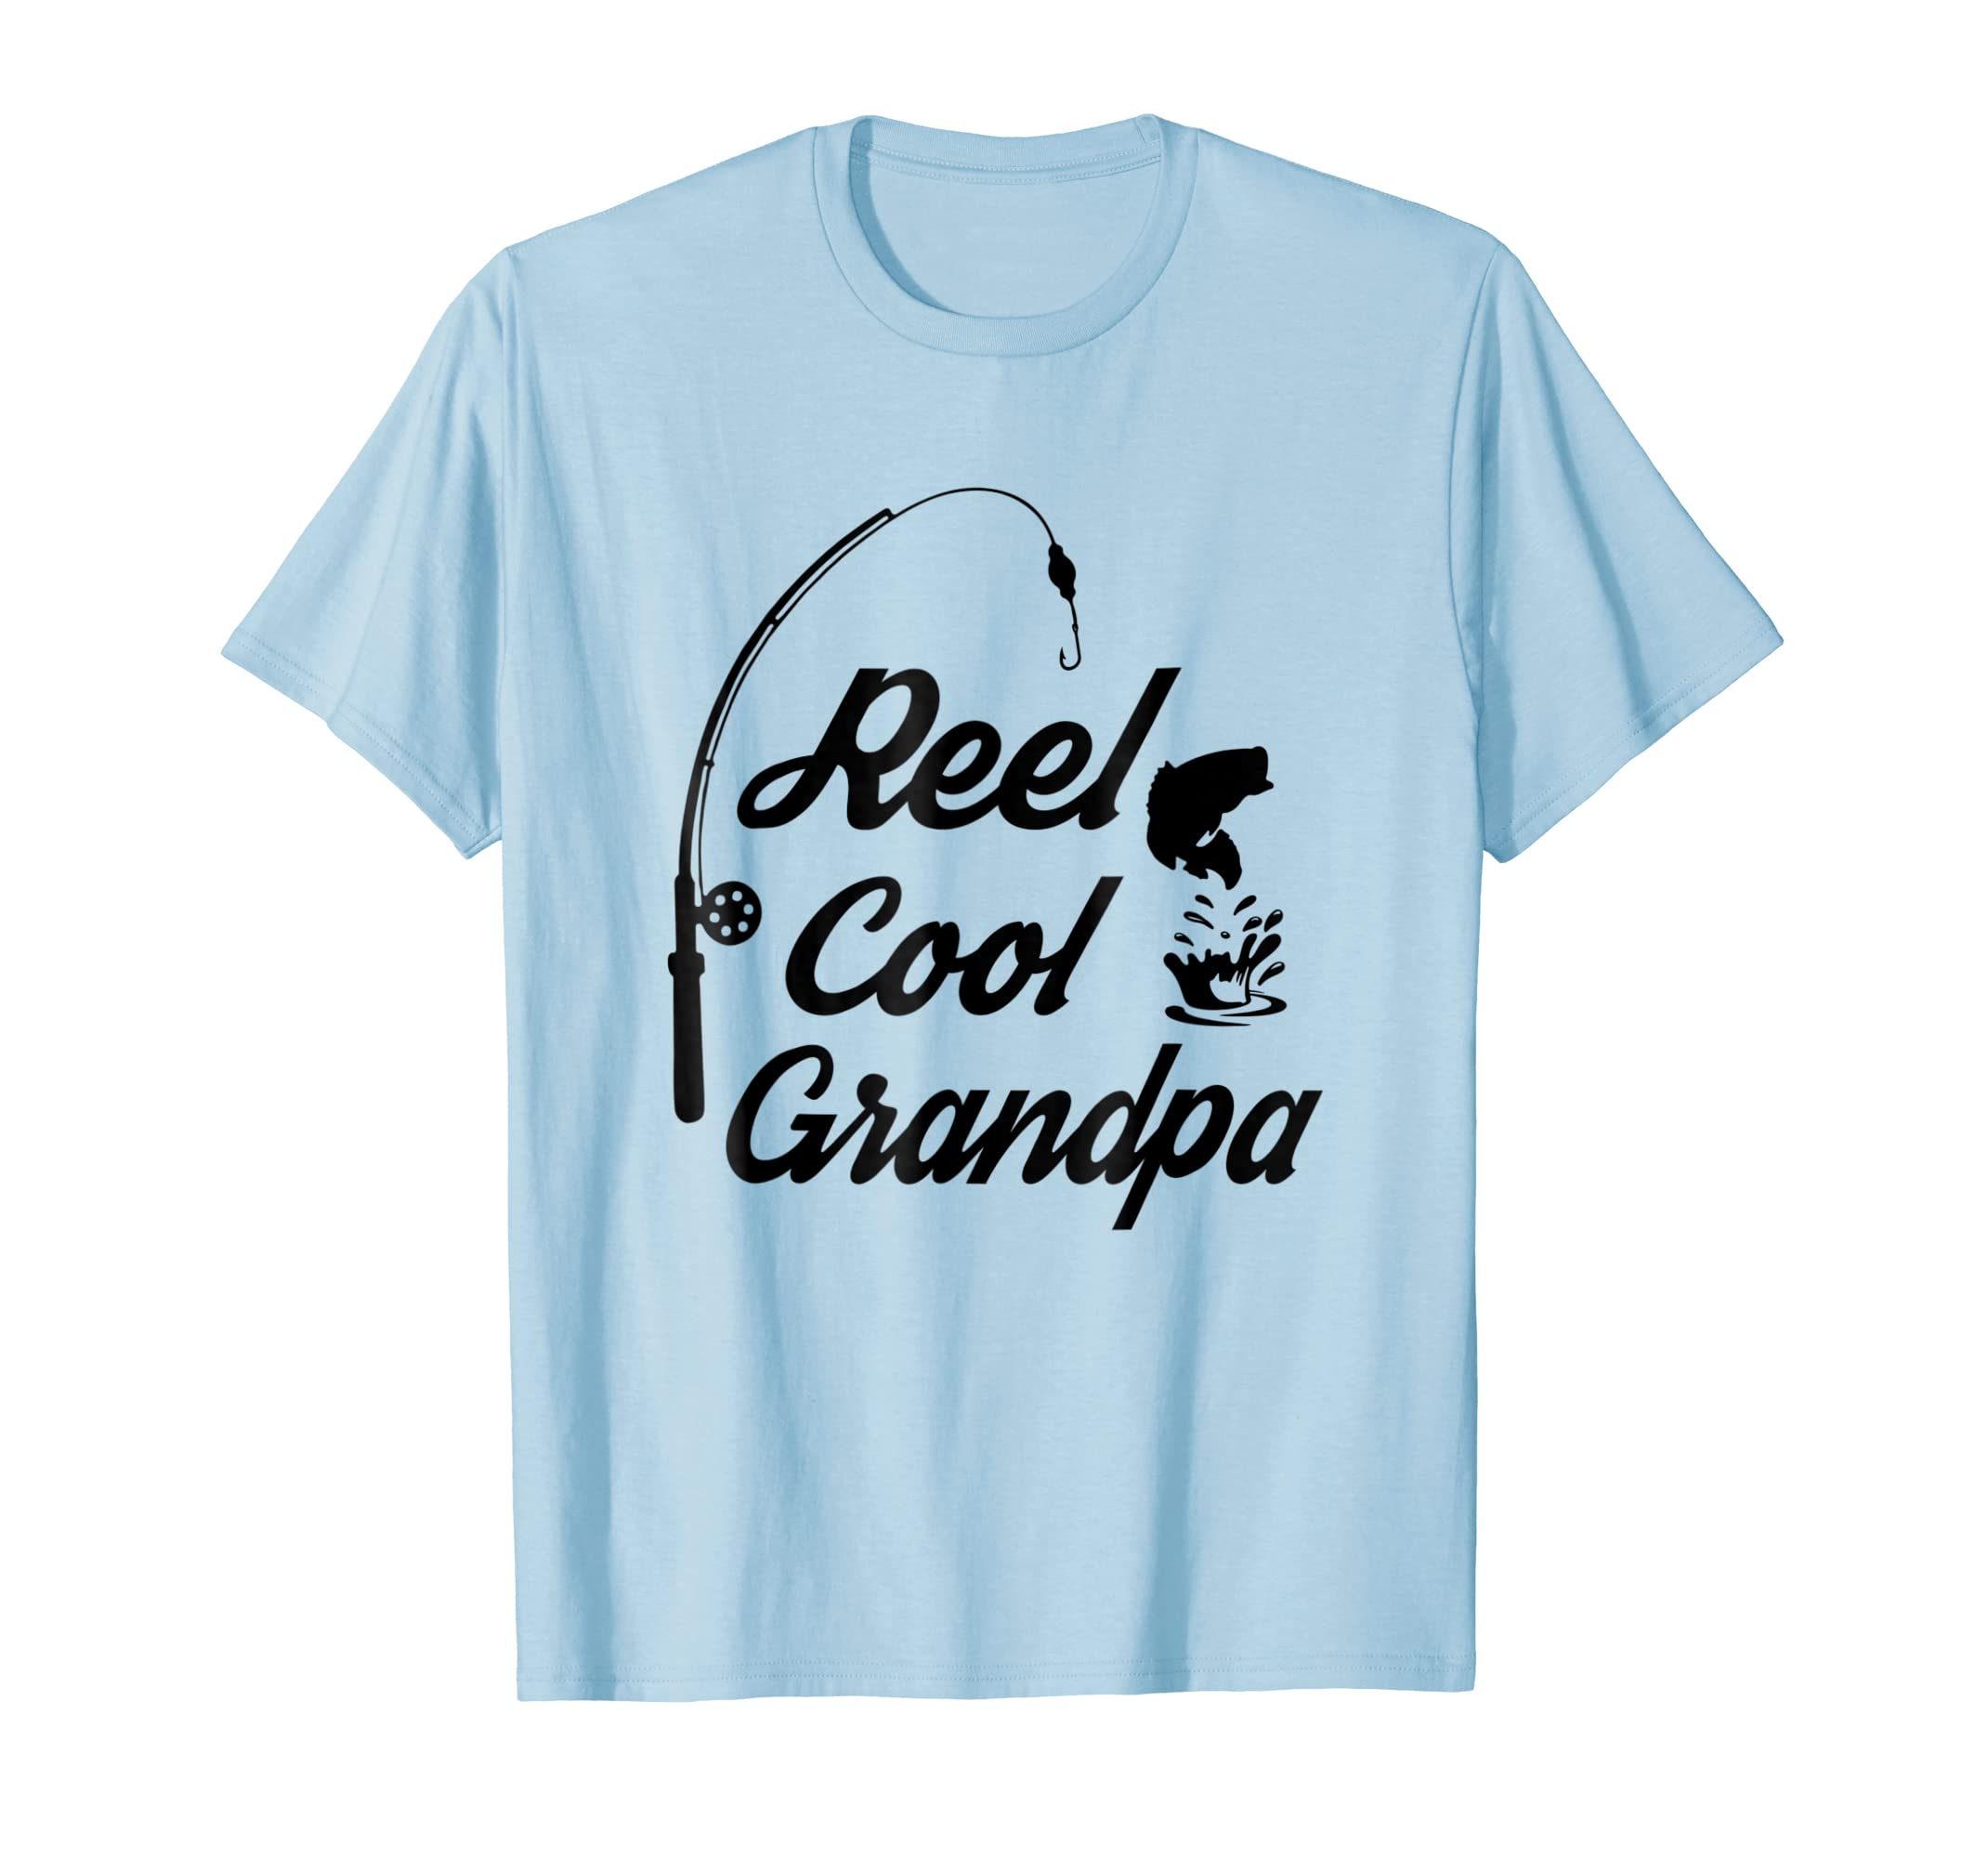 5e221f90c Amazon.com: Reel Cool Grandpa Shirts Ideas For Fathers Day Birthday Gift:  Clothing